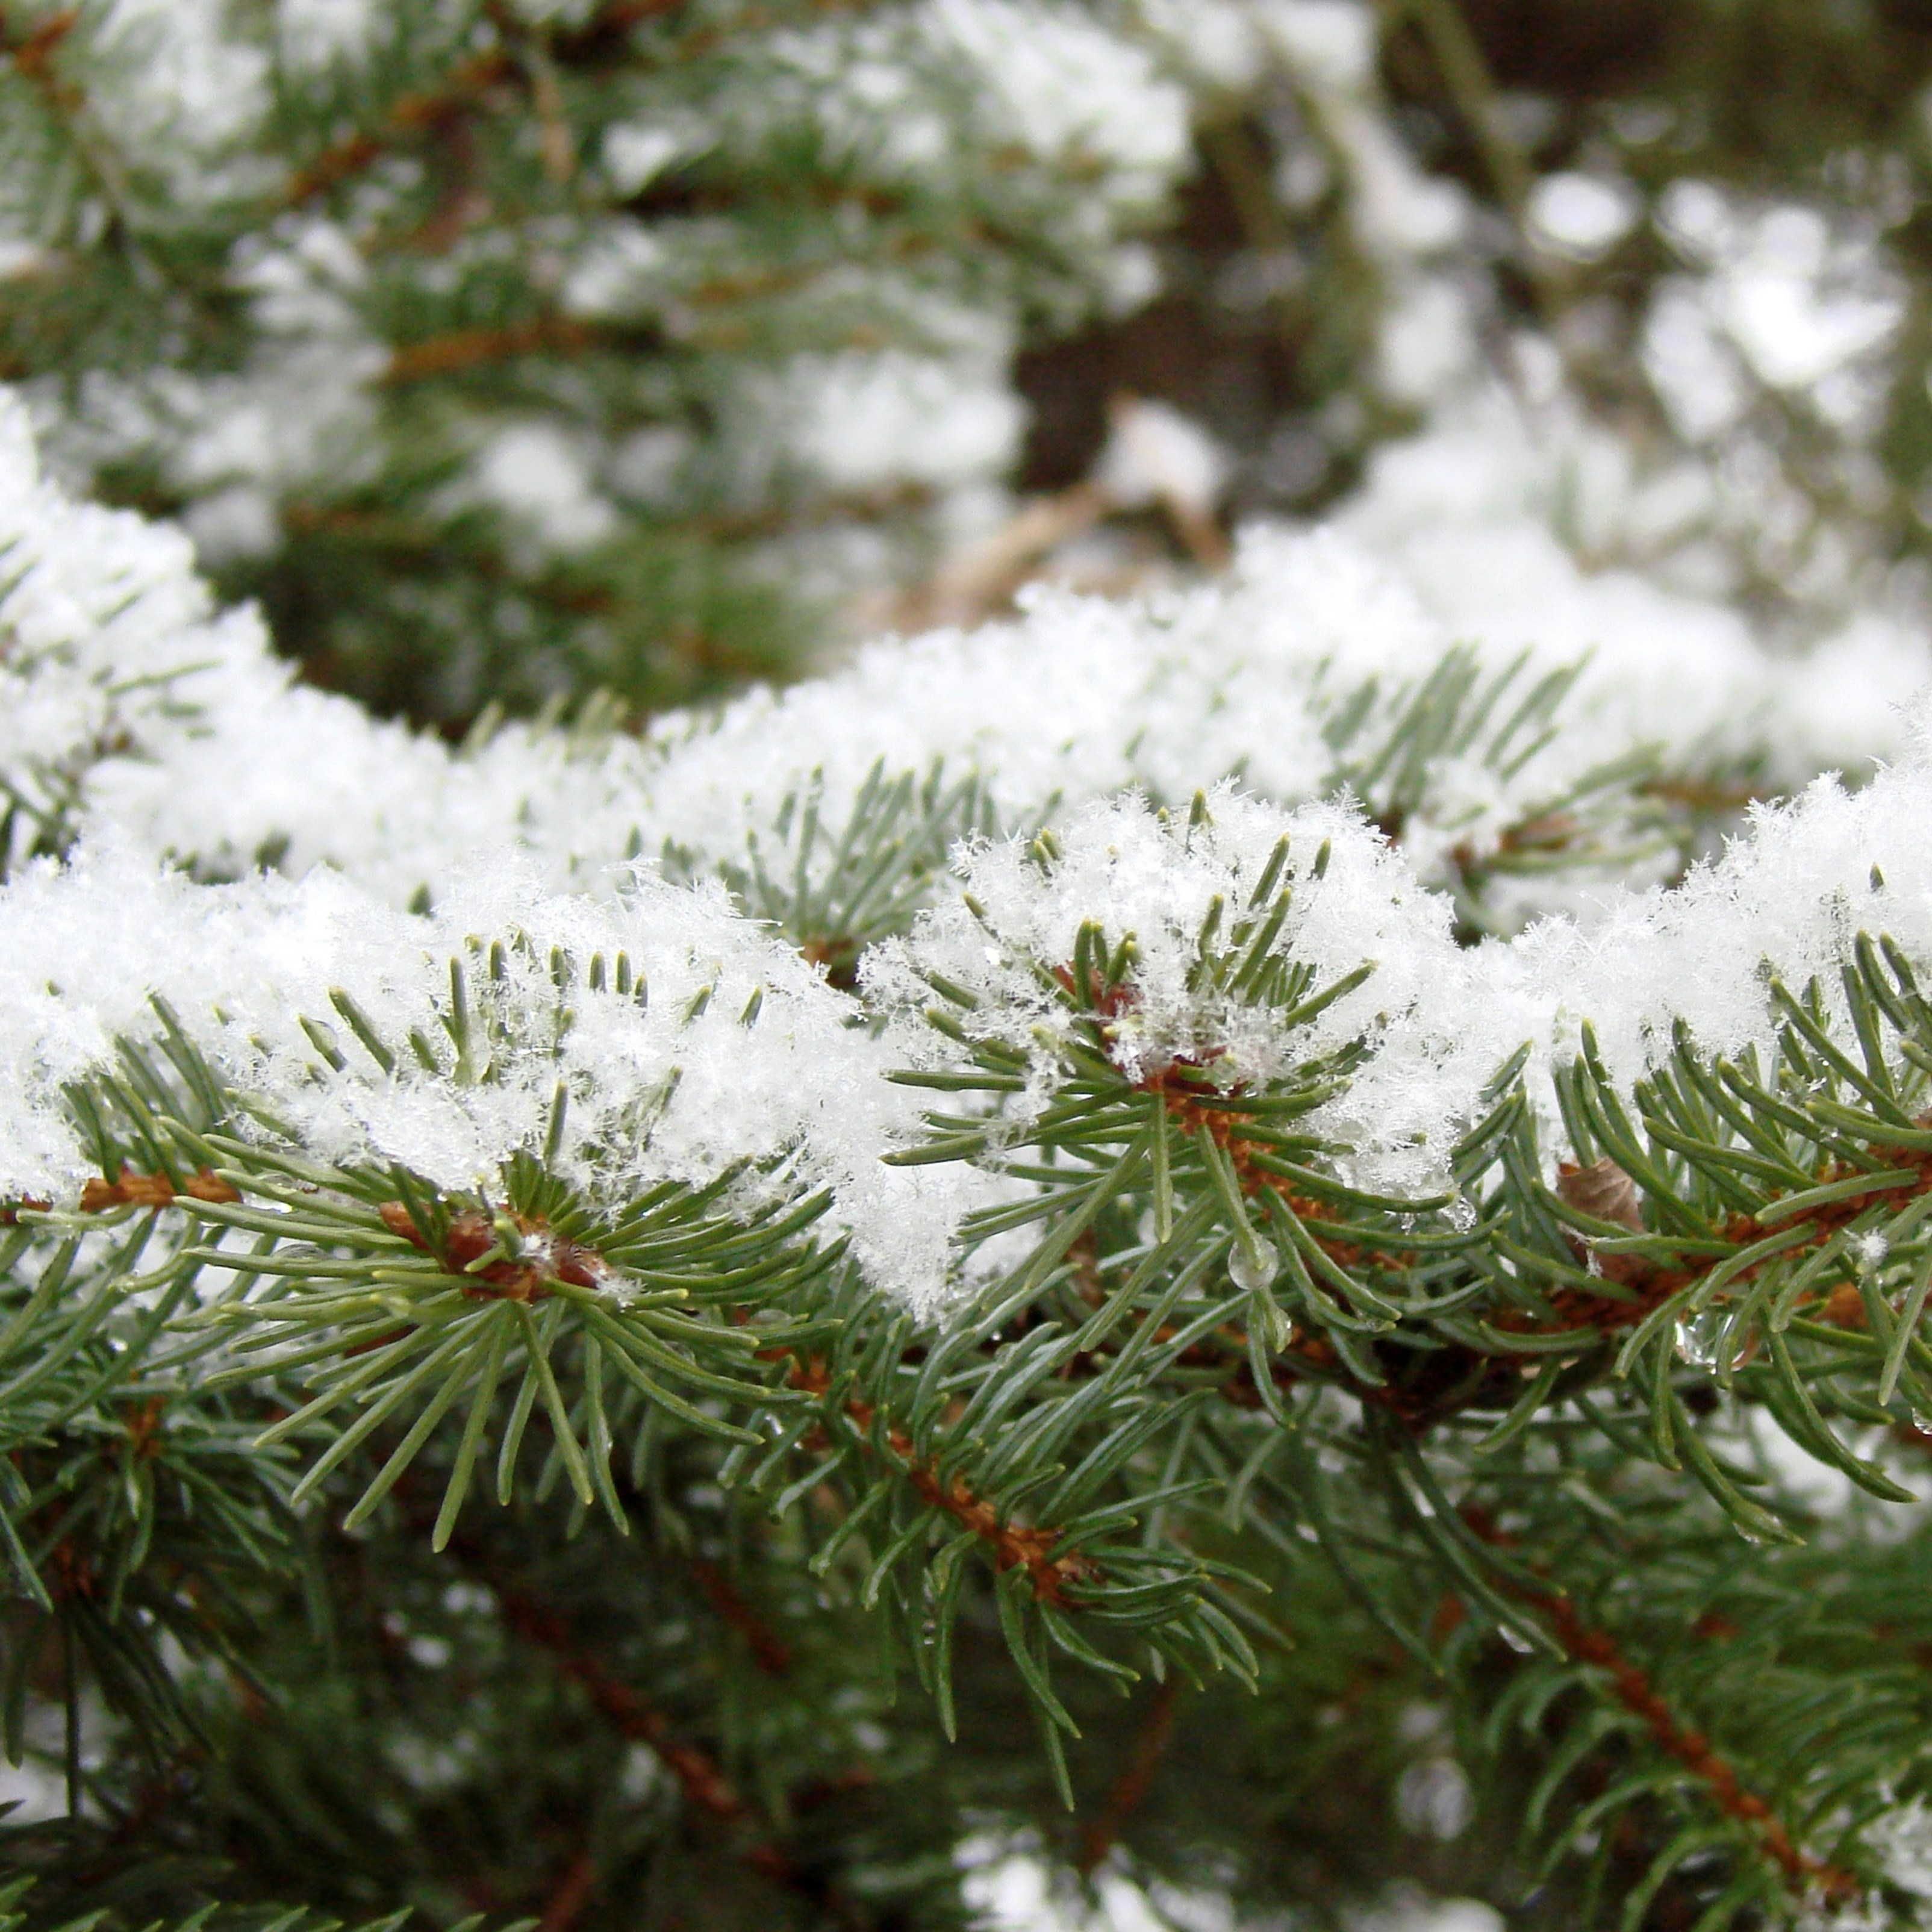 Winter Pine Leaves Snow Green iPad Wallpaper